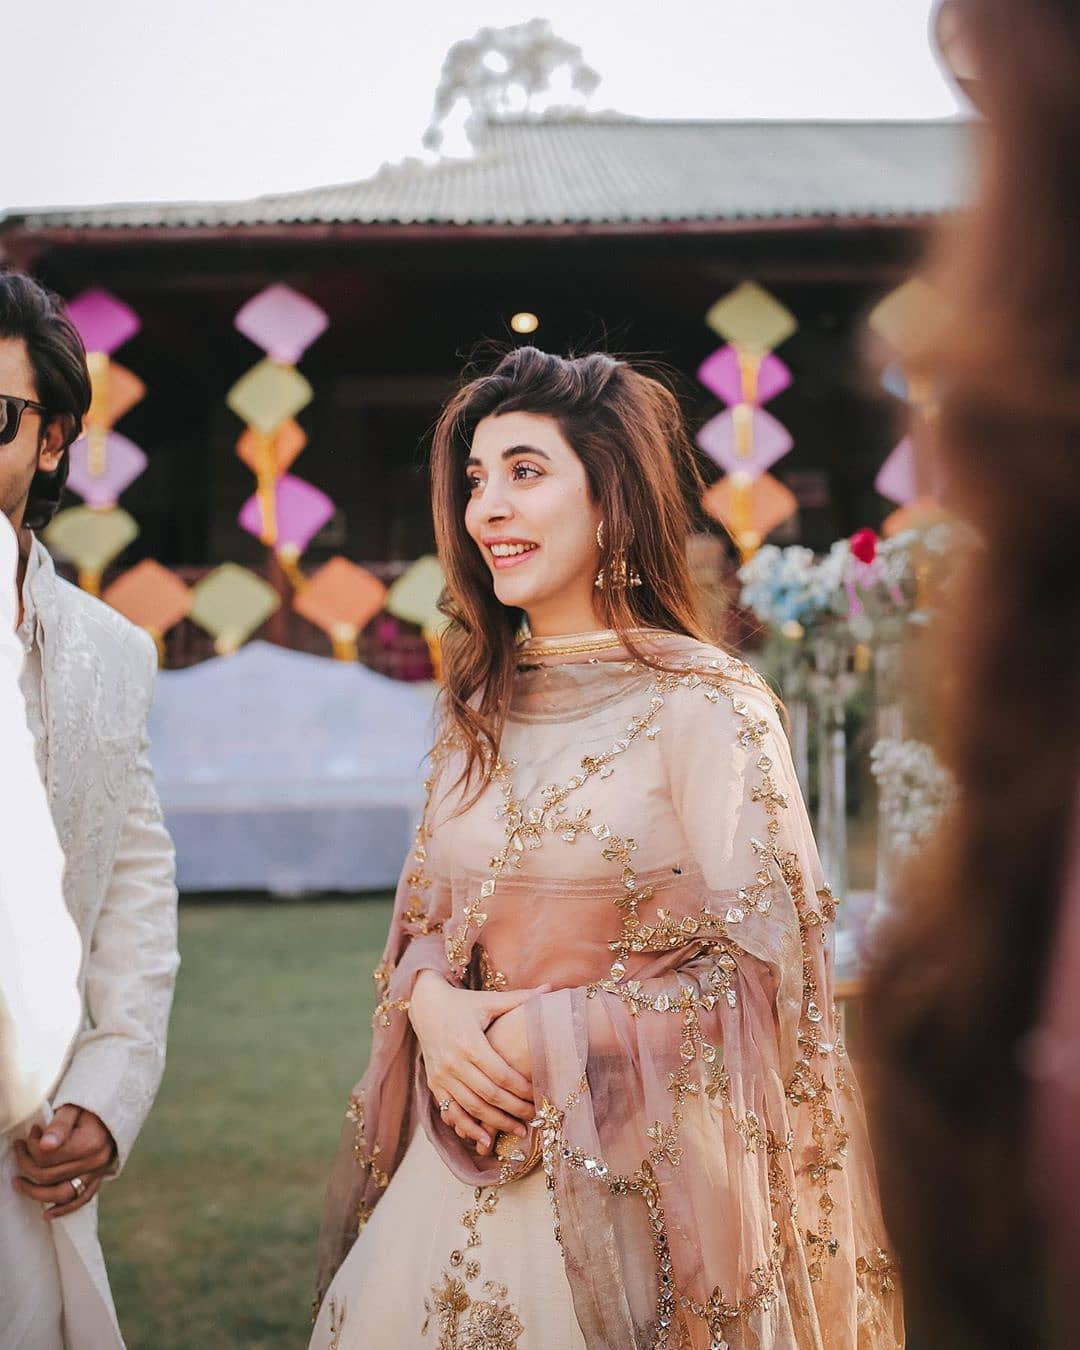 Urwa Hocane and Farhan Saeed Clicks From Friends Wedding